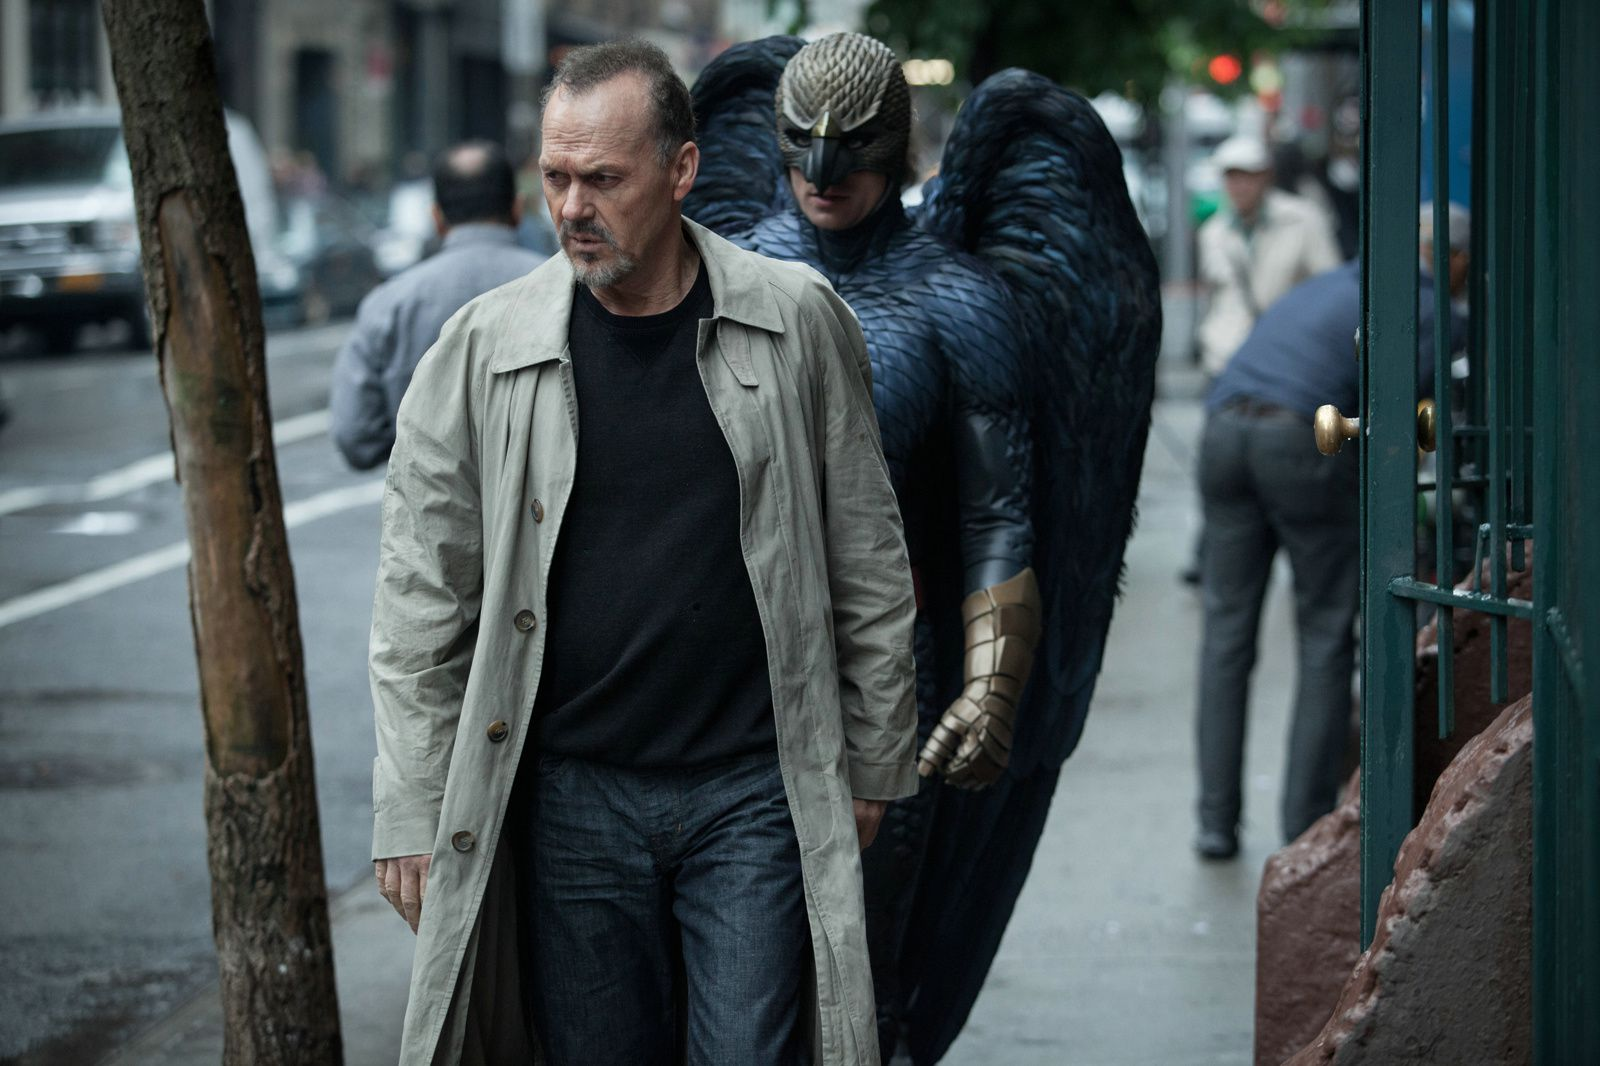 [critique] Birdman ou (La Surprenante Vertu De L'Ignorance) : un vrai film de super-slips